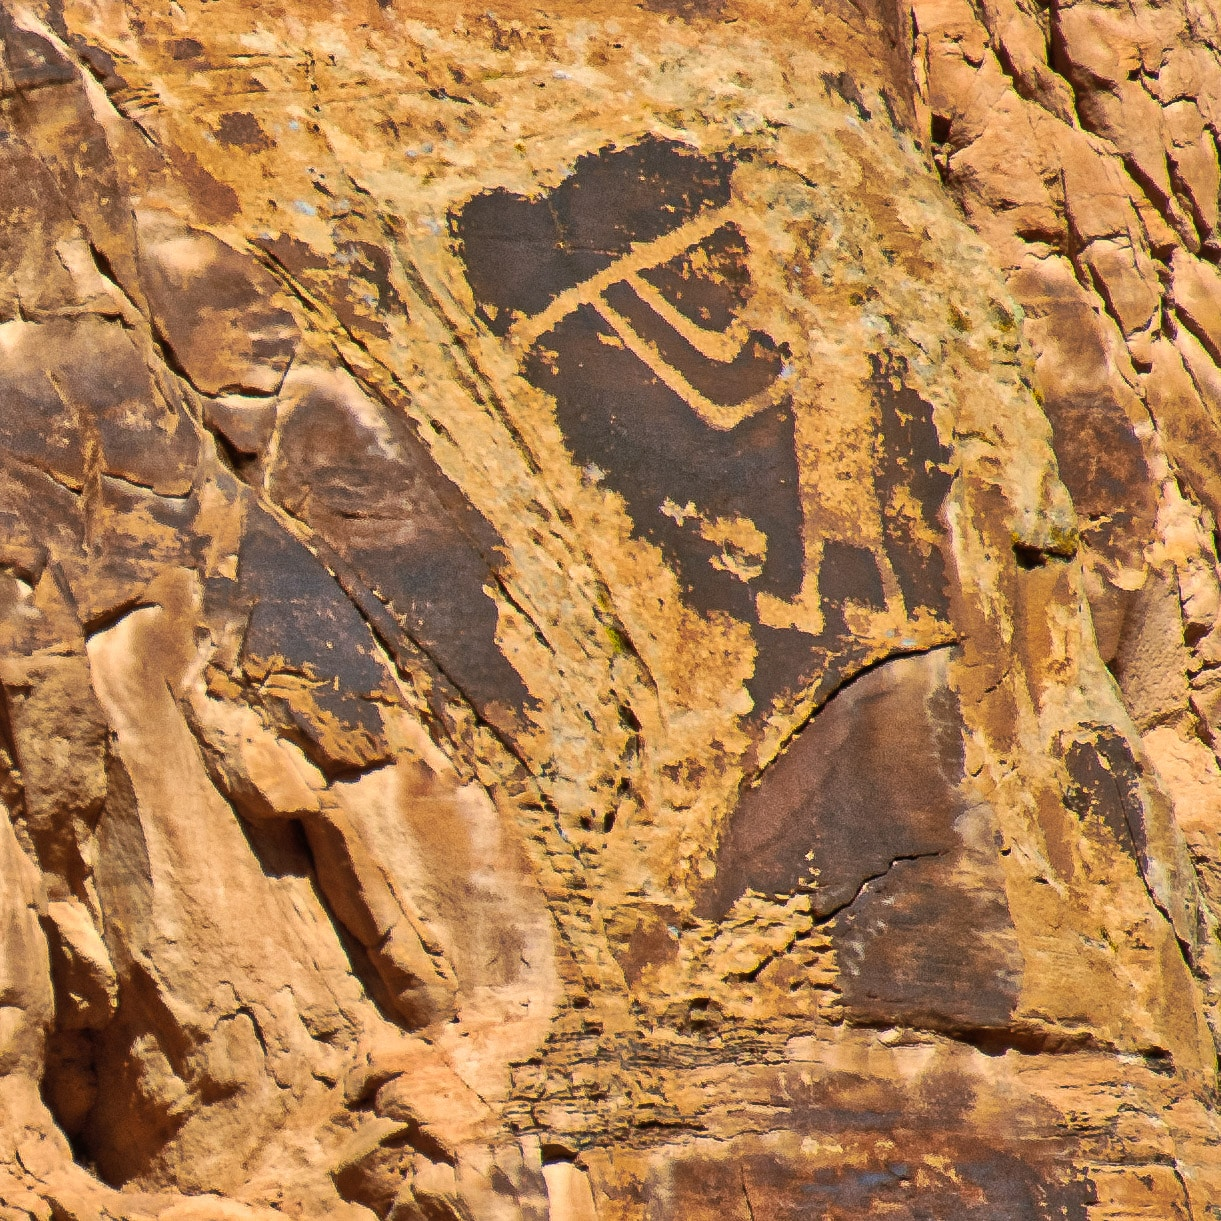 Petroglyph of Kokopelli serenading tourists along Cub Creek Road In Dinosaur National Monument.